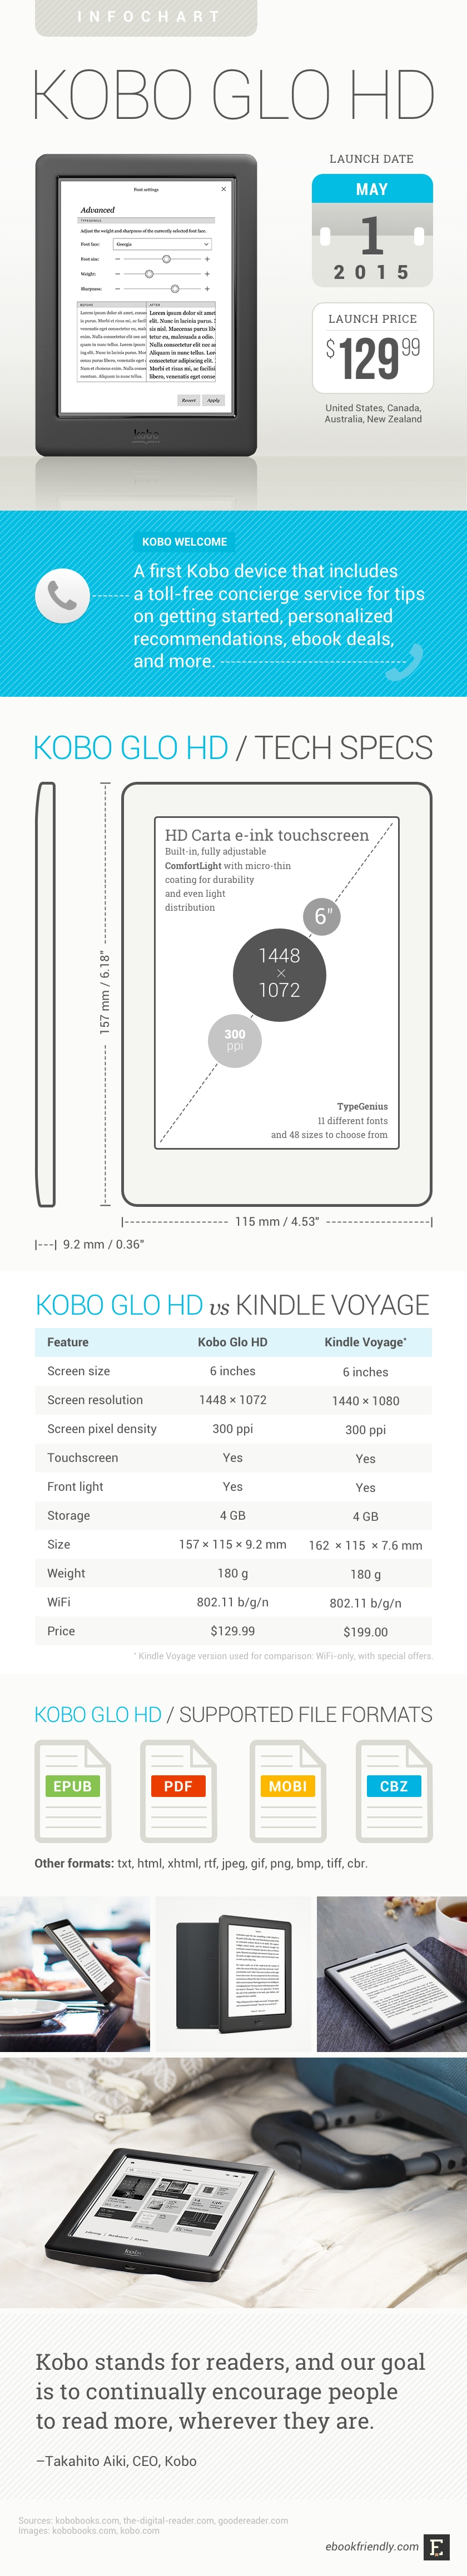 All you wanted to know about Kobo Glo HD (infographic) | Ebook Friendly